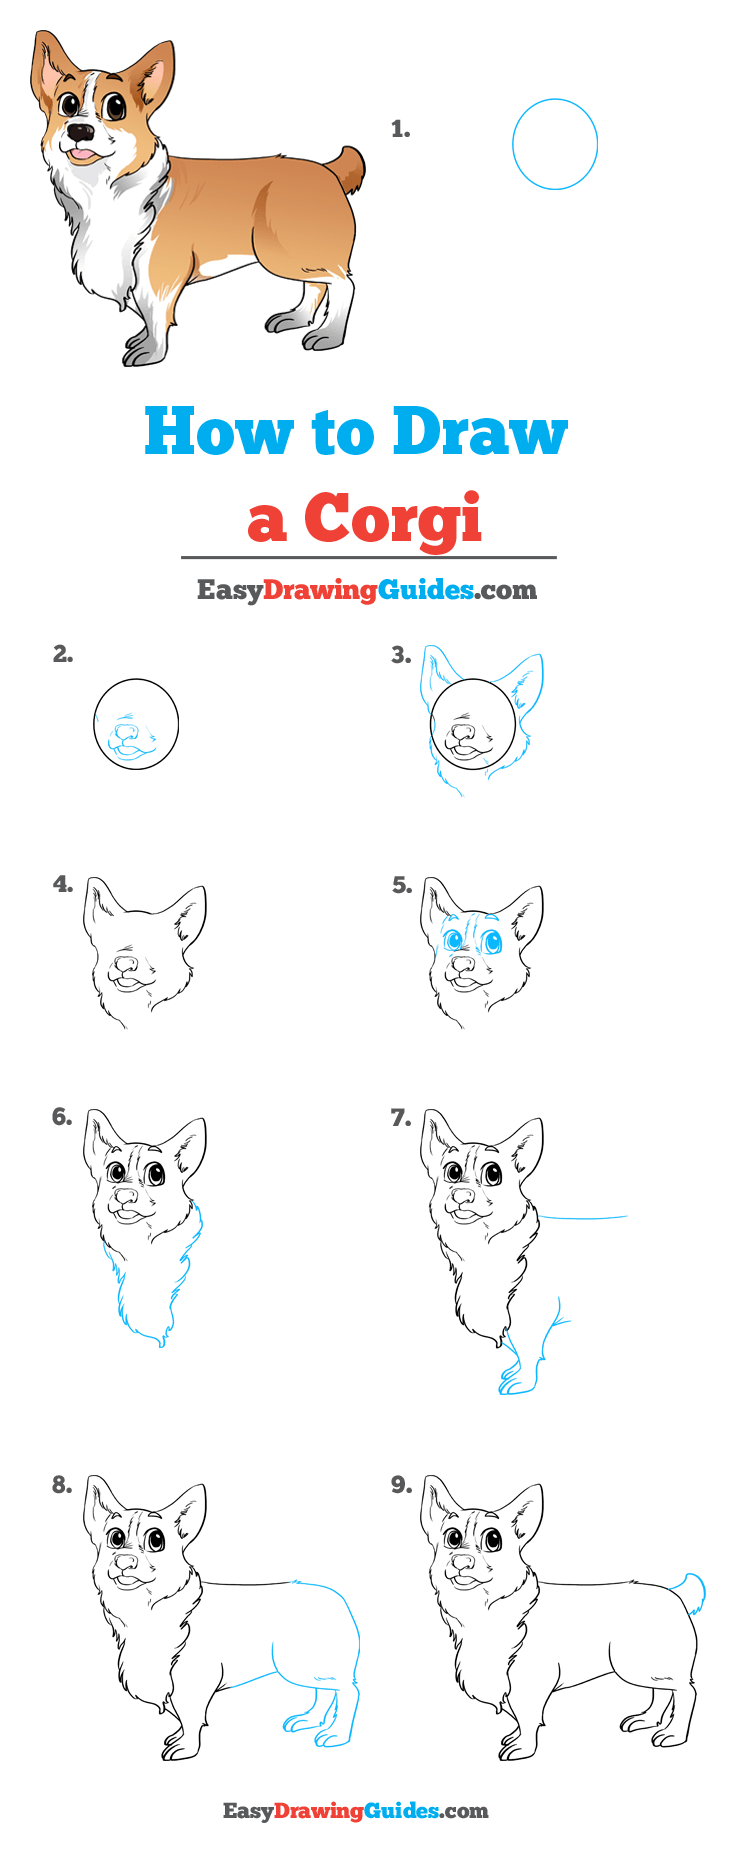 How to Draw Corgi